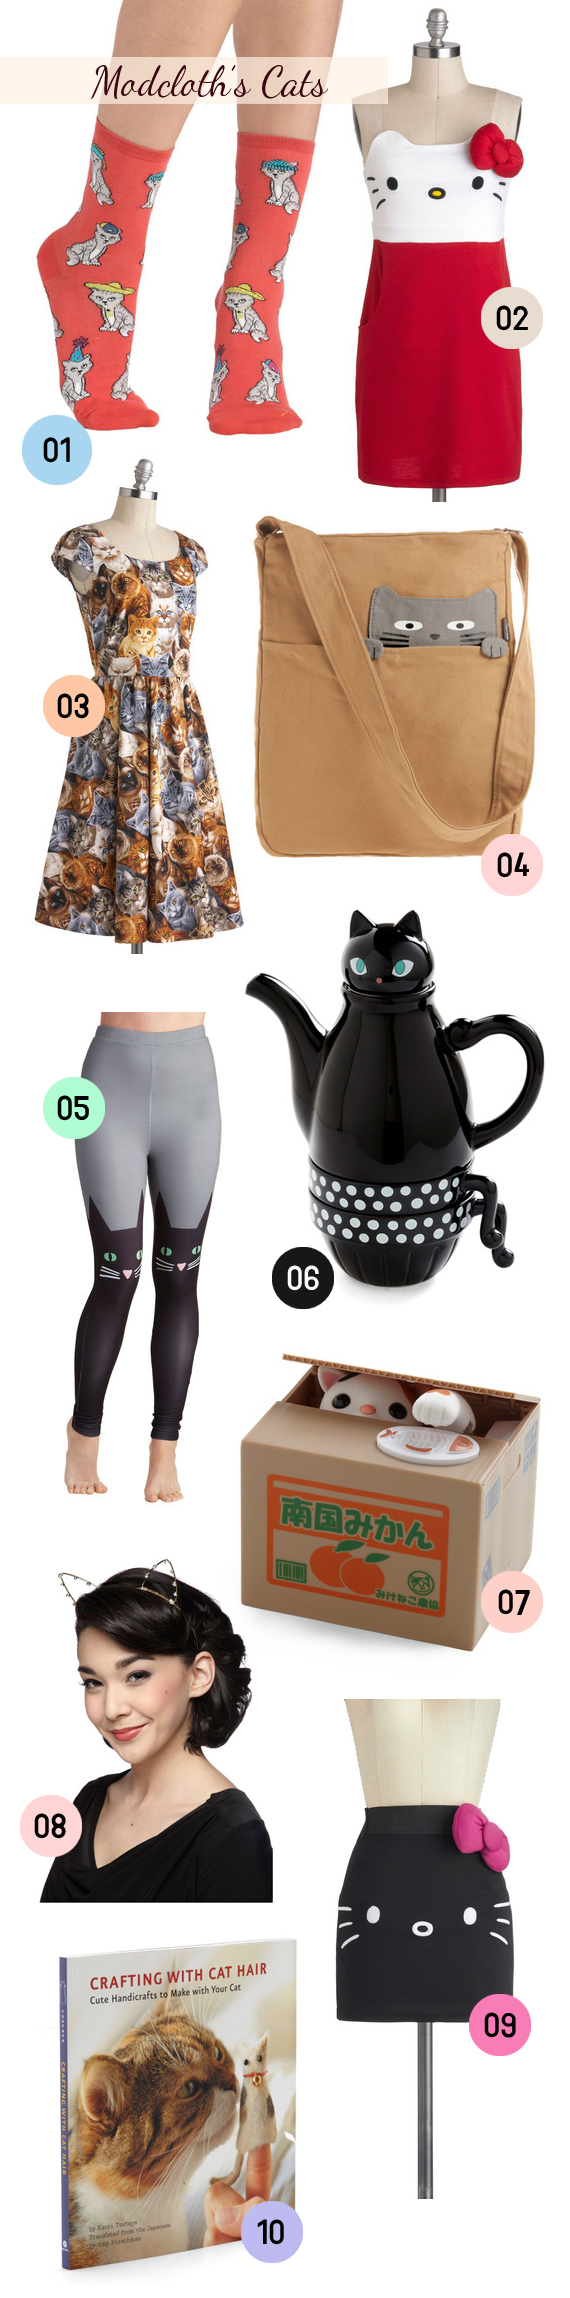 modcloth's cat products